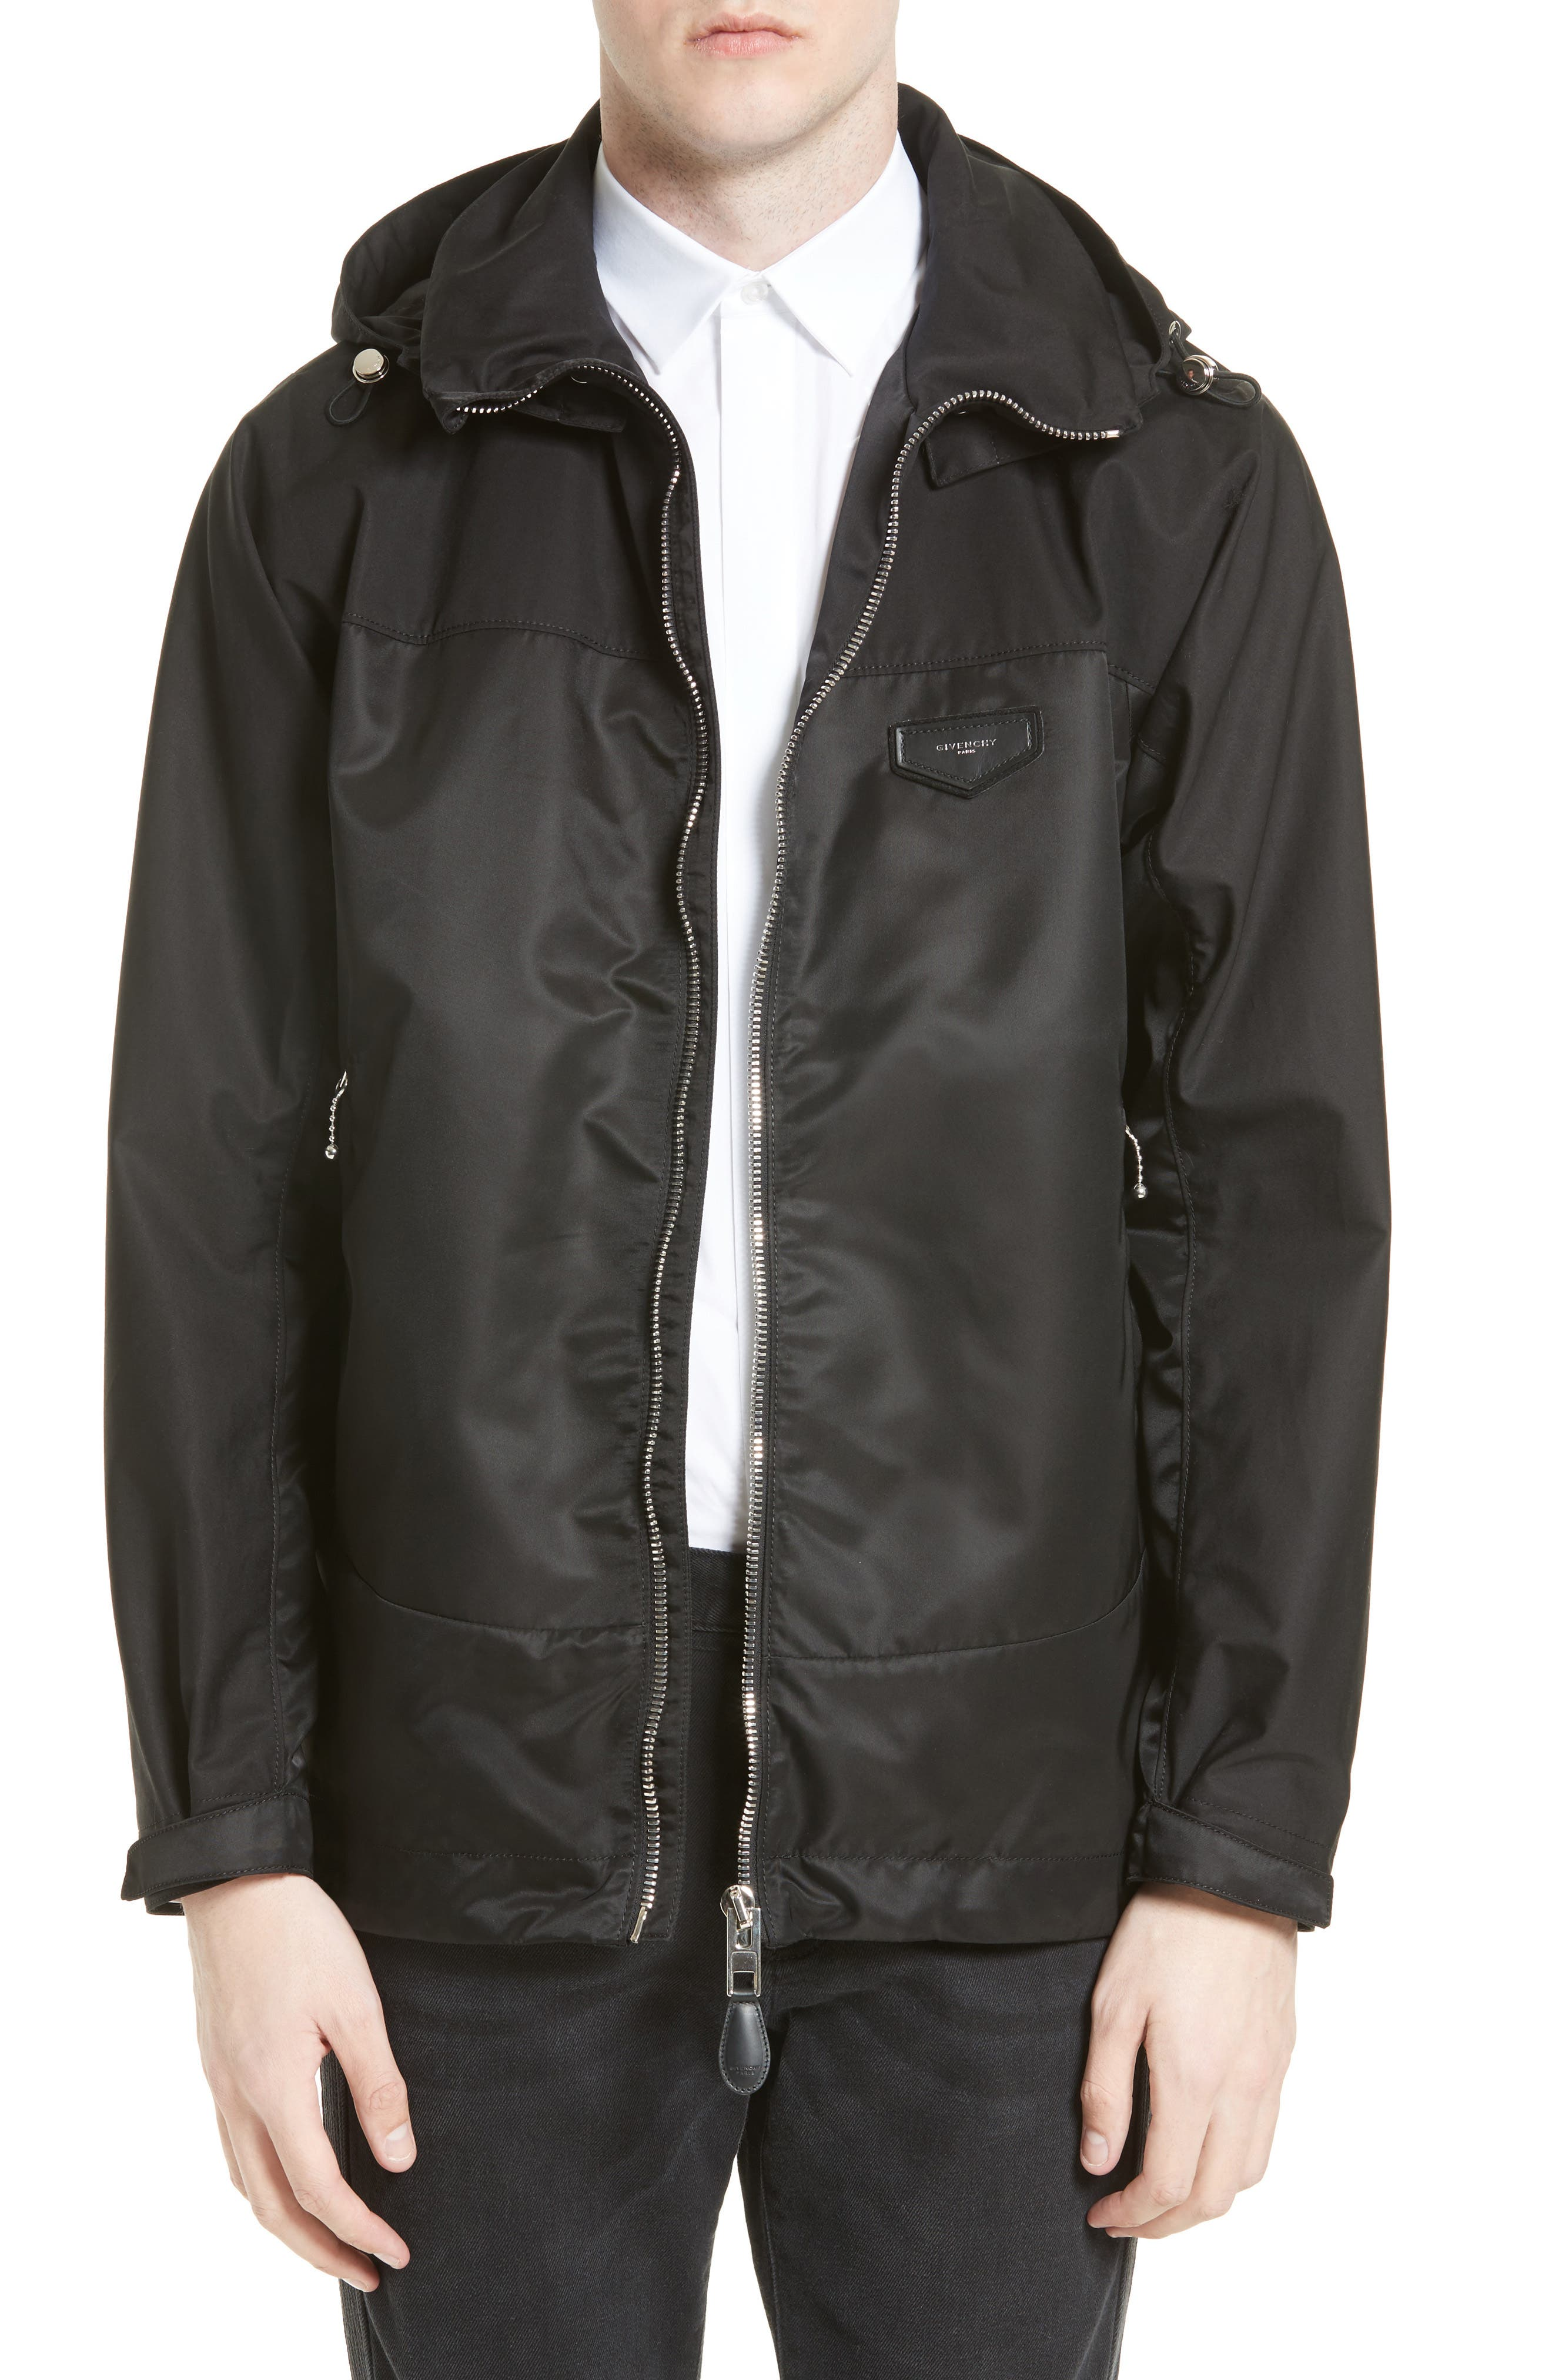 Alternate Image 1 Selected - Givenchy Technical Cotton Windbreaker